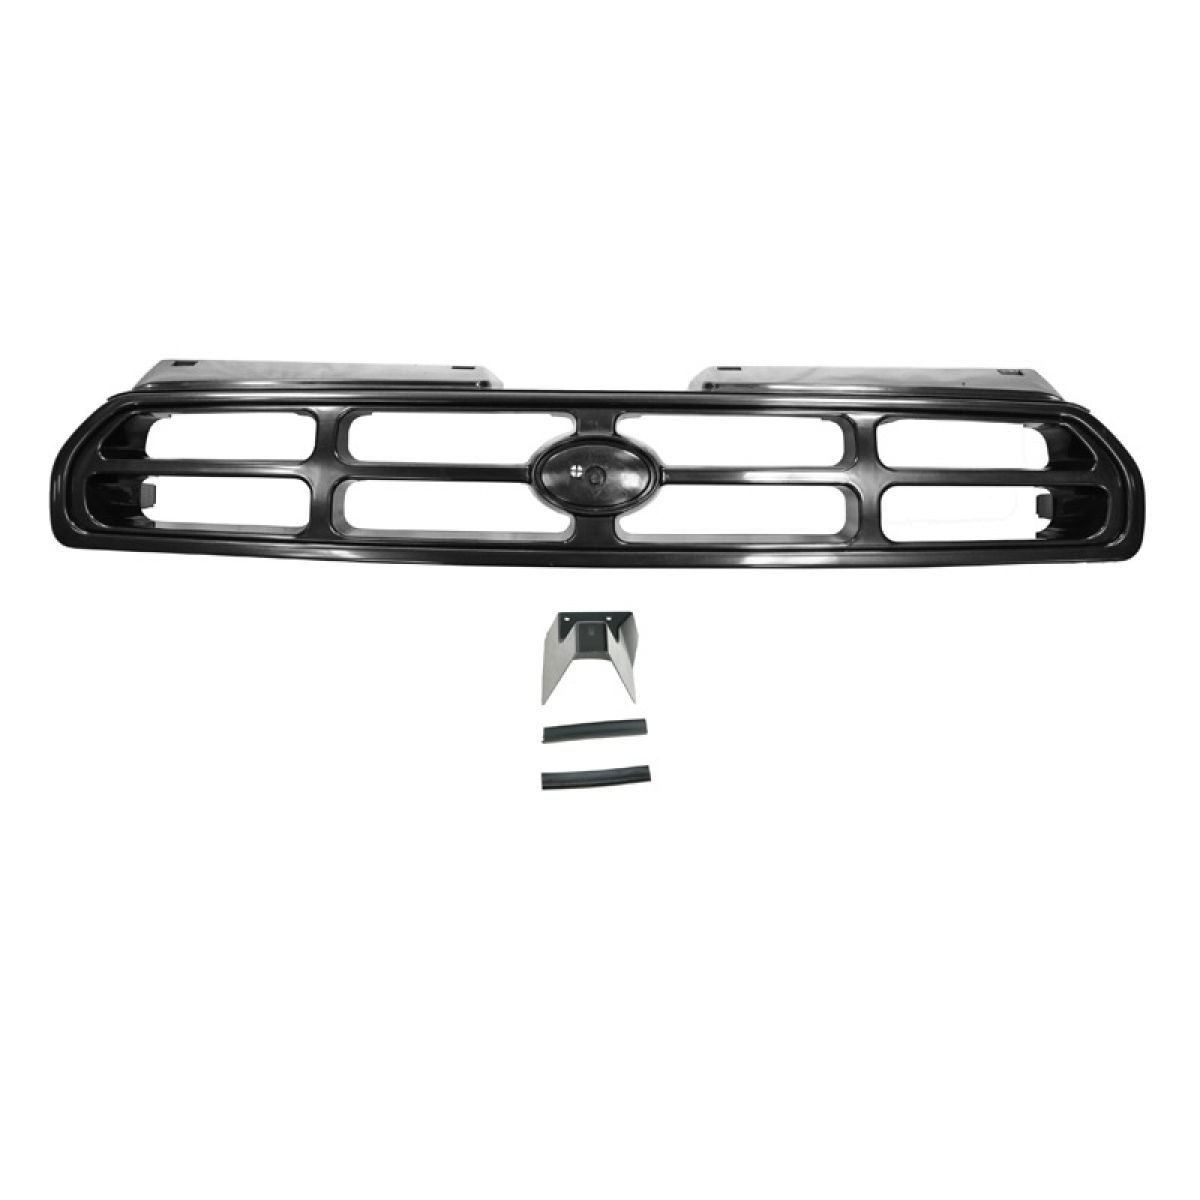 Grille Grill Black For 96 99 Subaru Legacy Outback